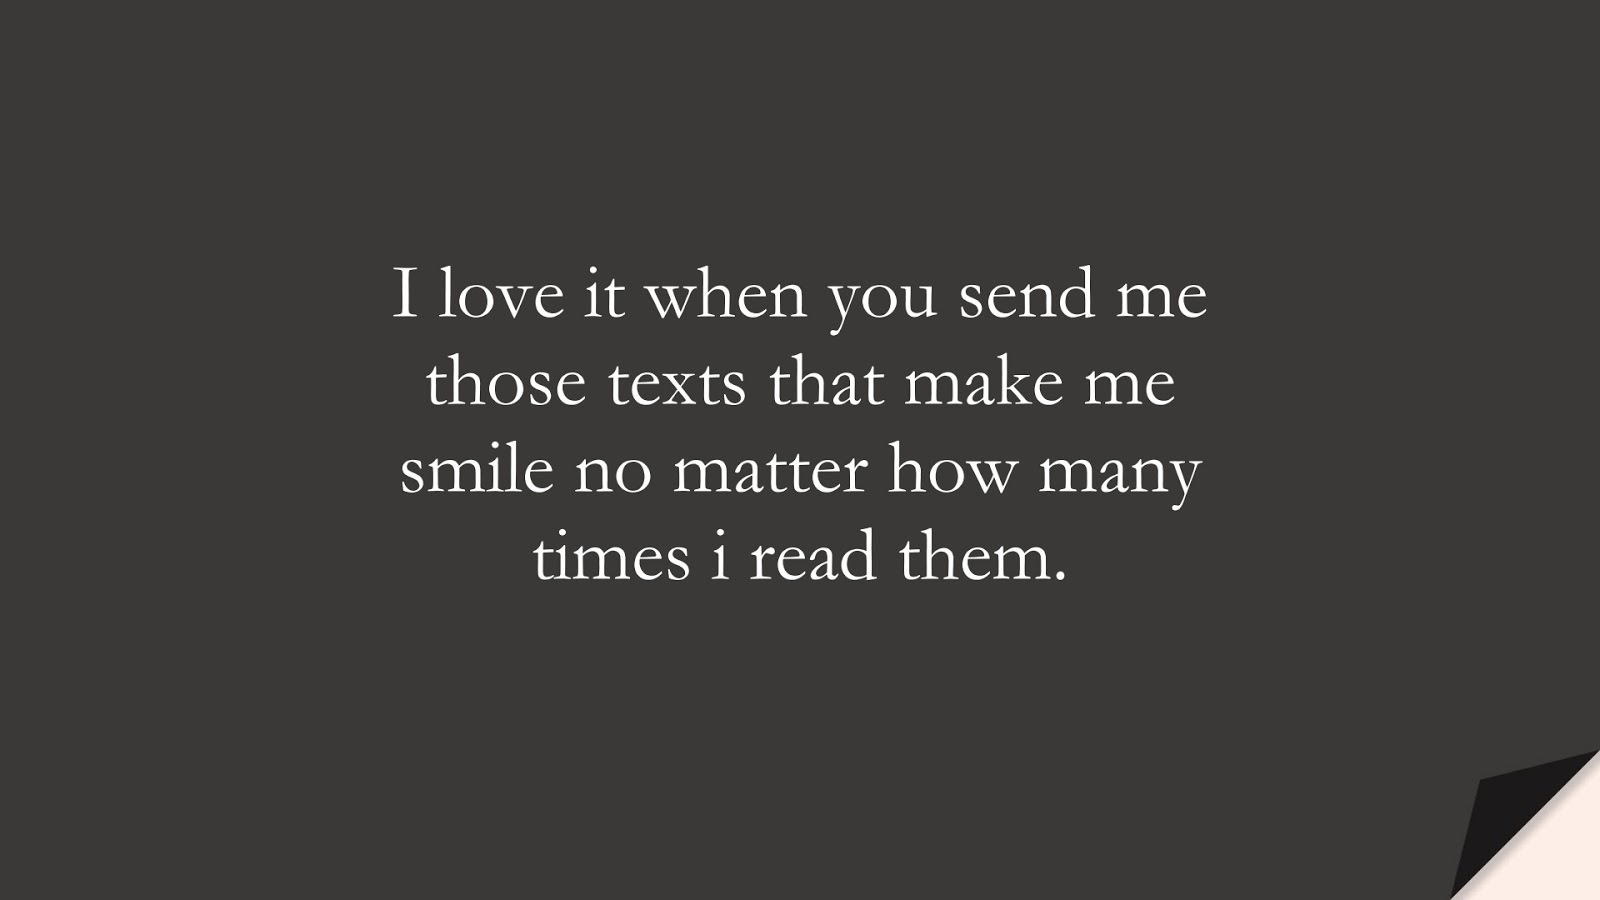 I love it when you send me those texts that make me smile no matter how many times i read them.FALSE